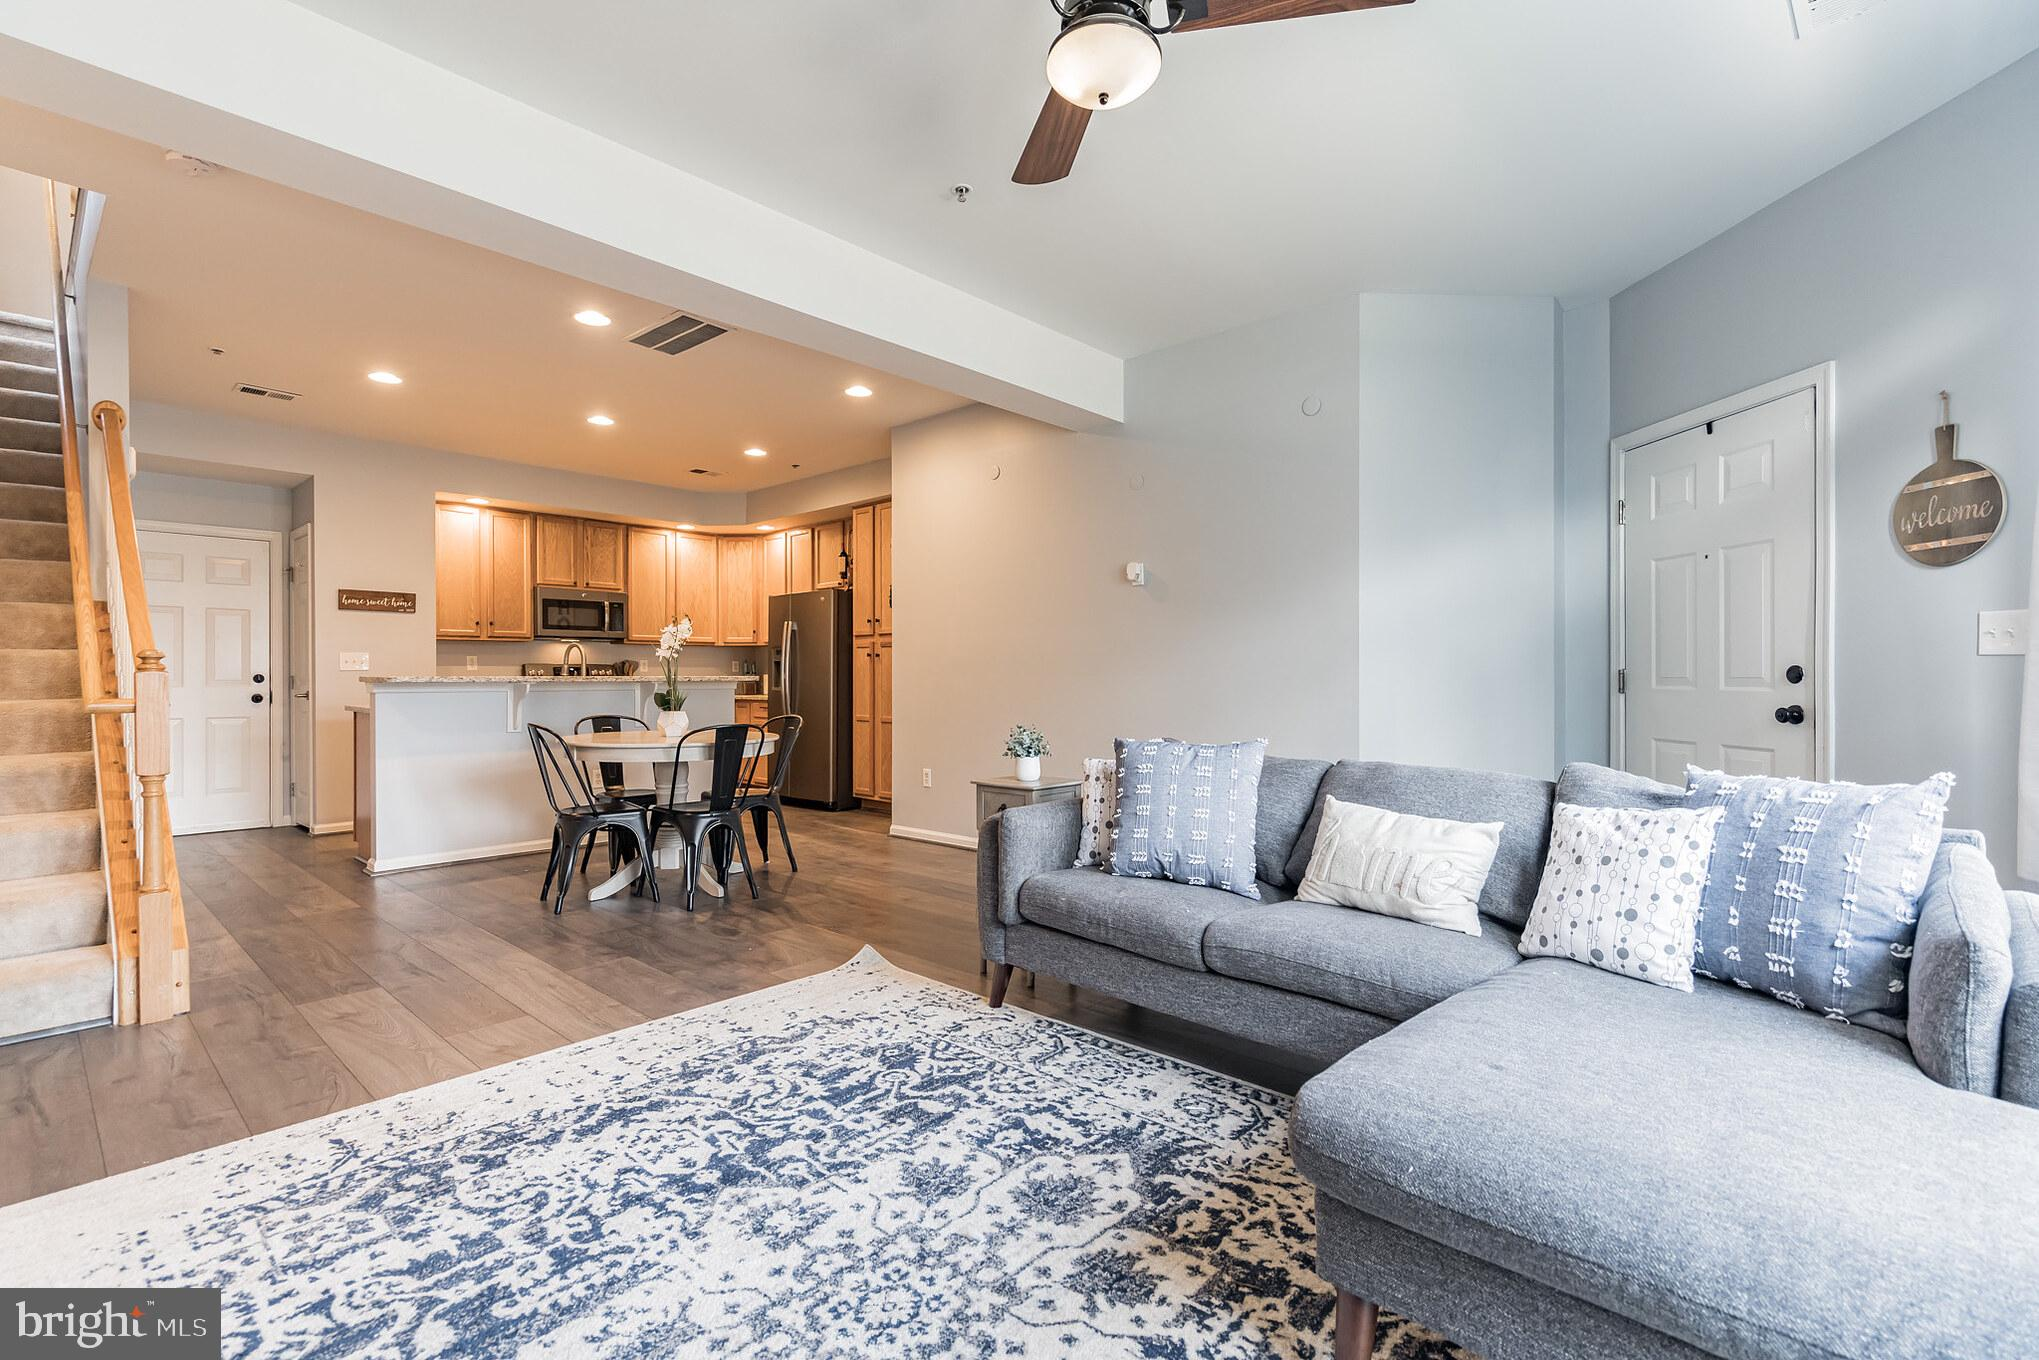 Welcome home to Forest Ridge Terrace! This adorable main level, END unit condo has so many great upd